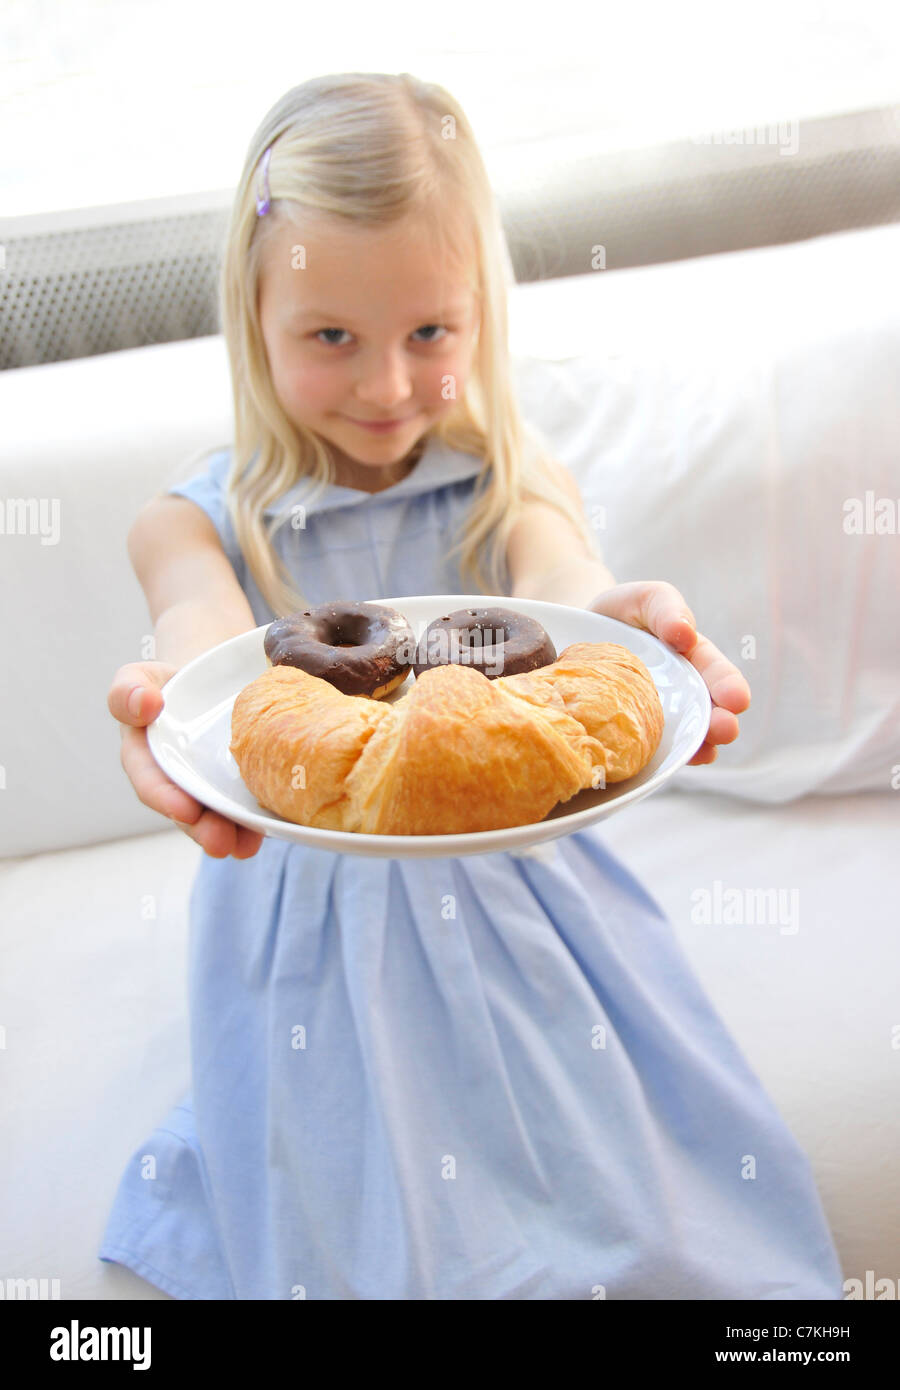 Young girl, 6, with a blue dress presenting a plate with chocolate donuts and a croissant - Stock Image